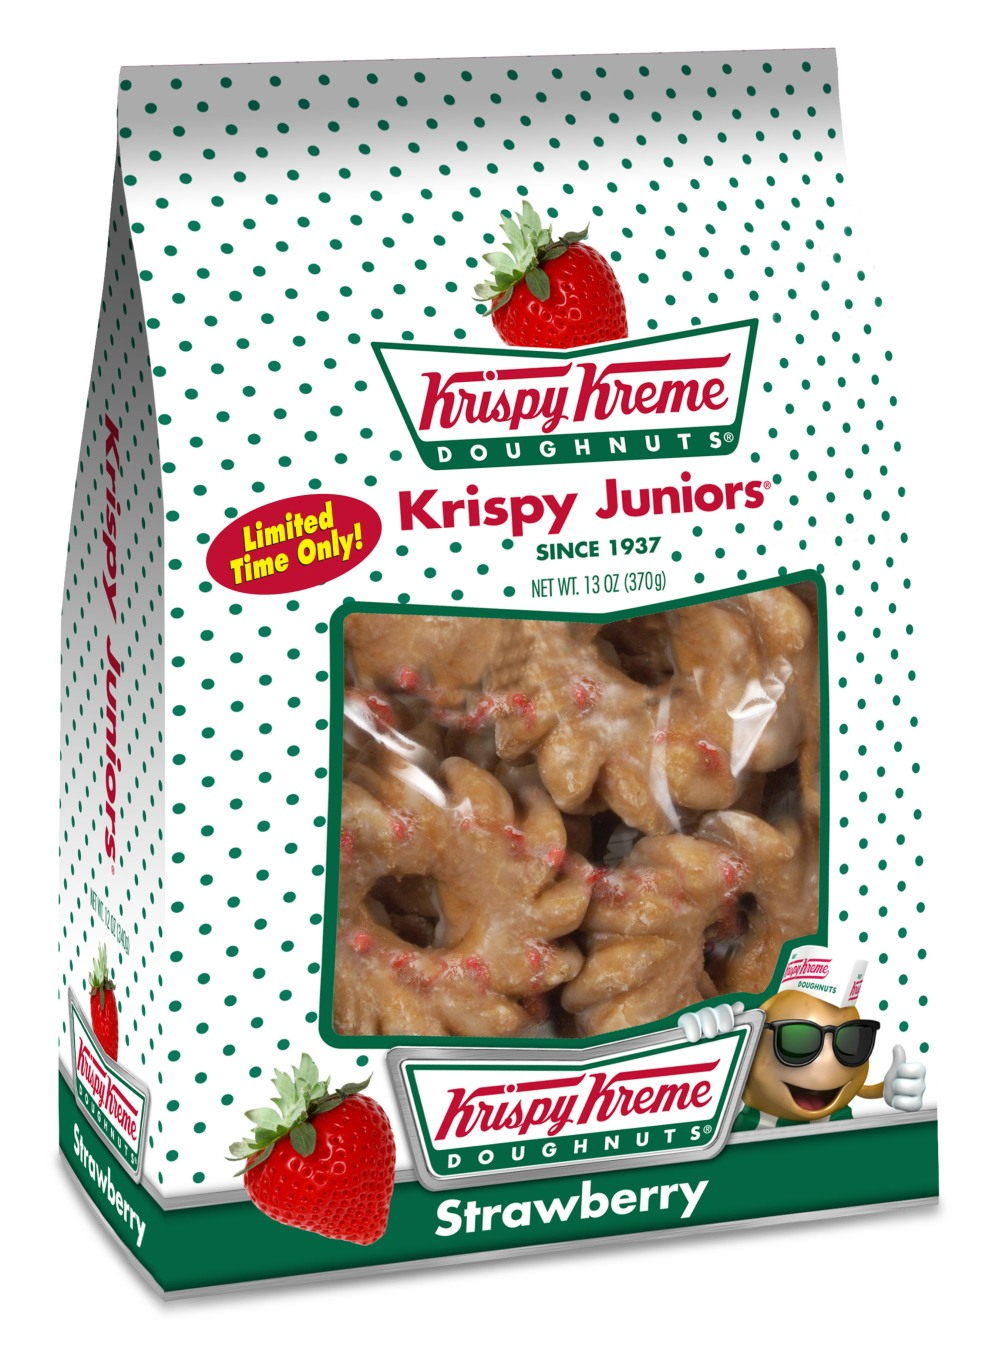 KRISPY KREME DOUGHNUT CORPORATION STRAWBERRY KRISPY JUNIORS